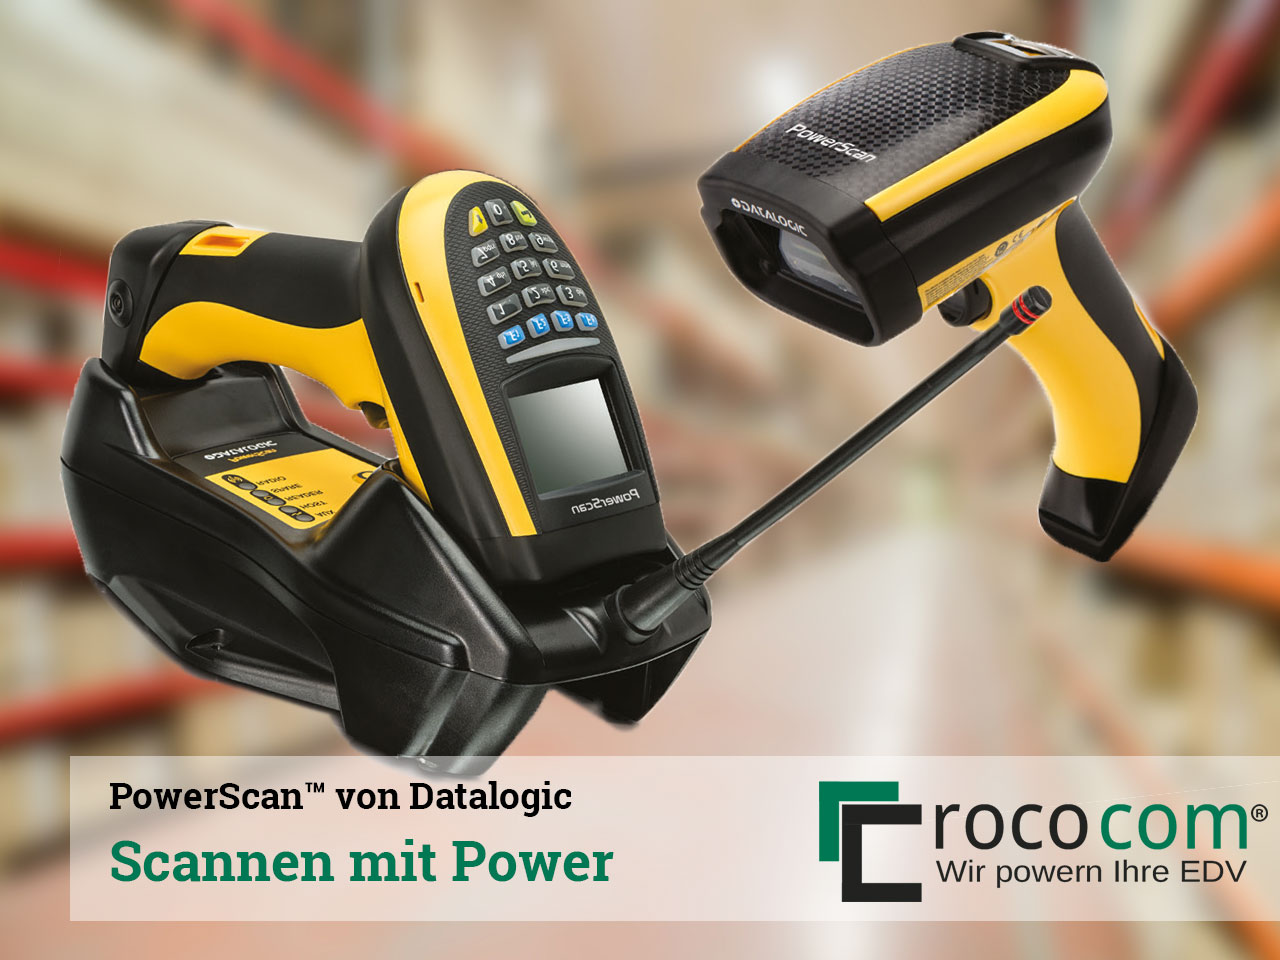 Scannen mit Power